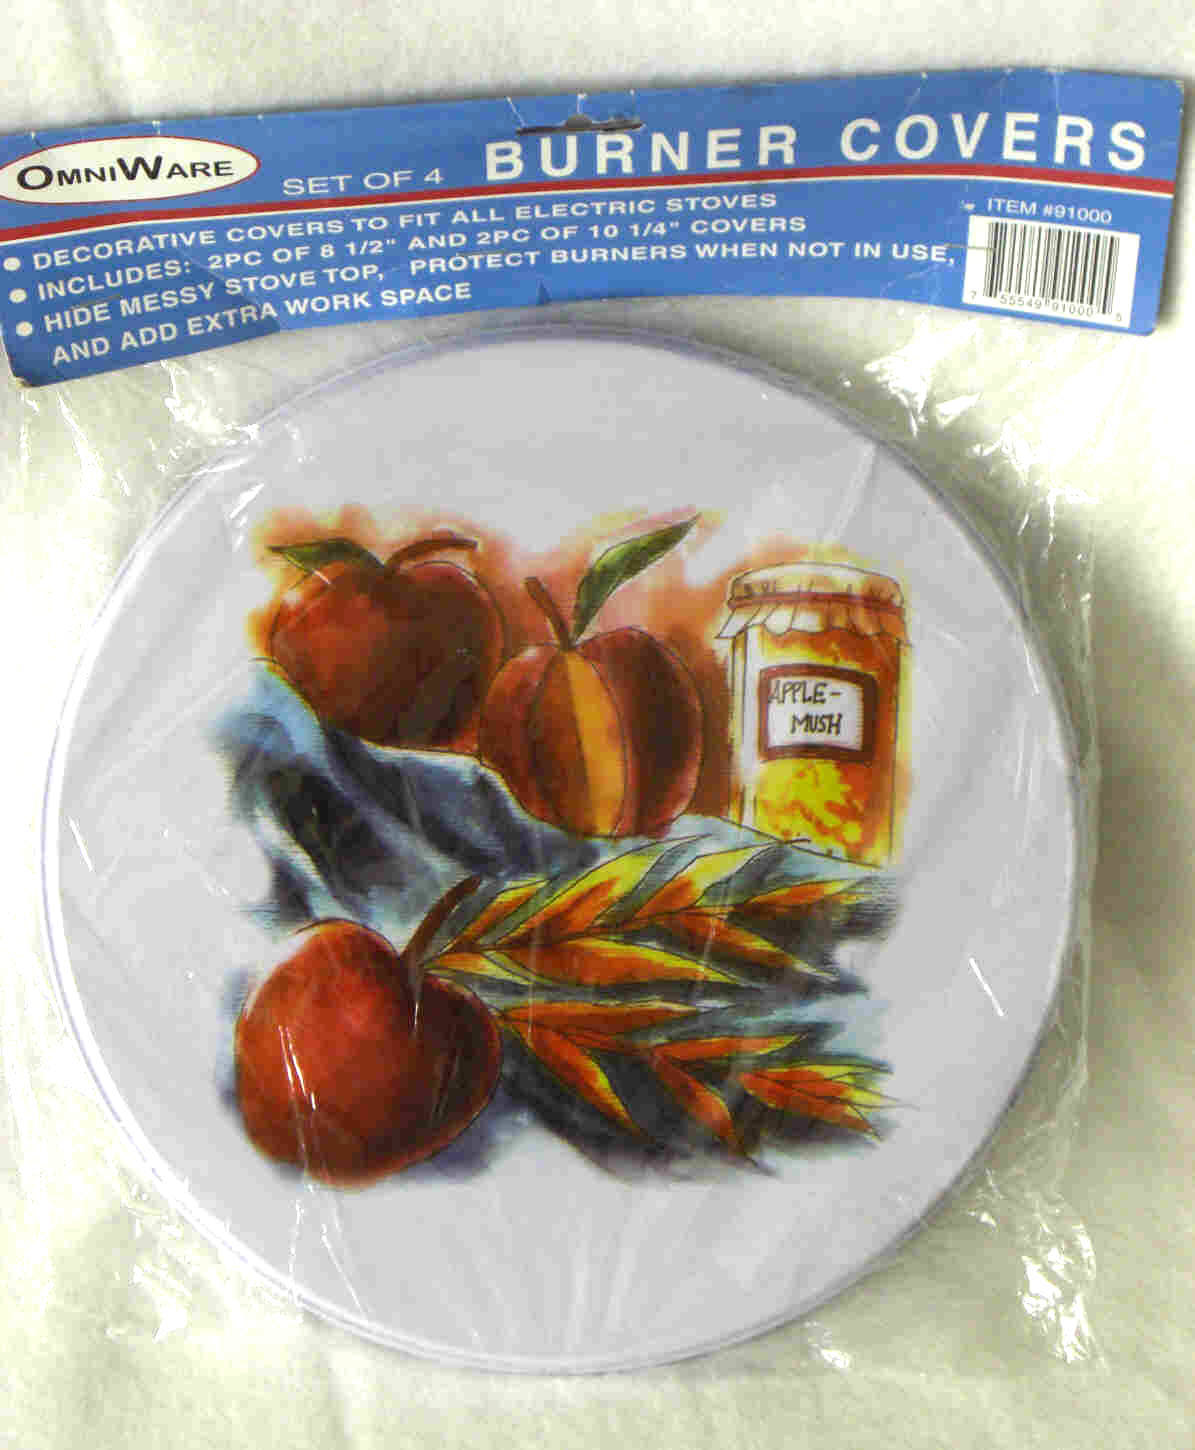 Omniware Round Burner Cover 4 pc Set Electric Stove Apple Peach Design